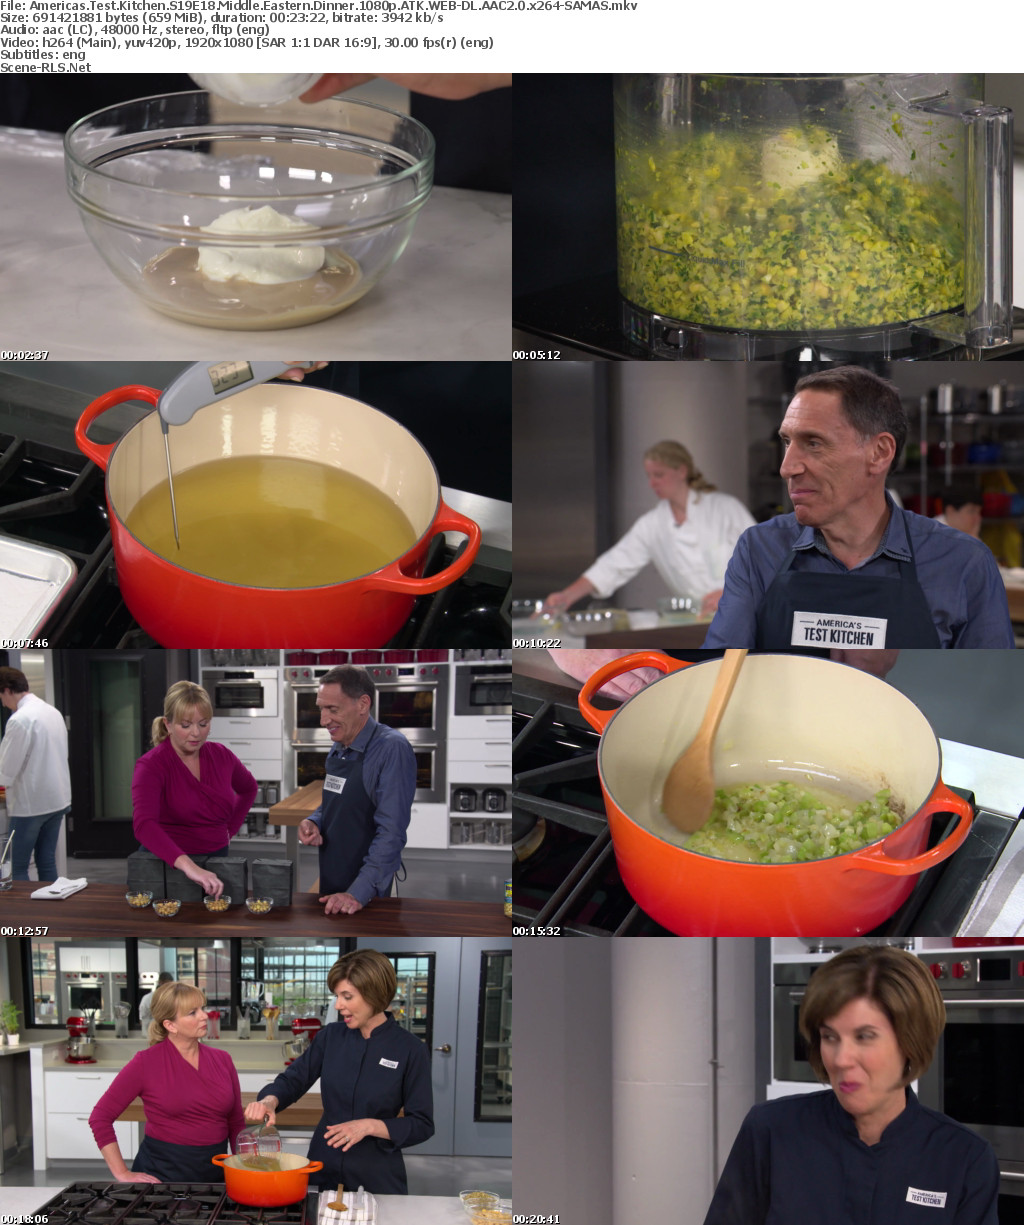 Americas Test Kitchen S19e18 Middle Eastern Dinner 1080p Atk